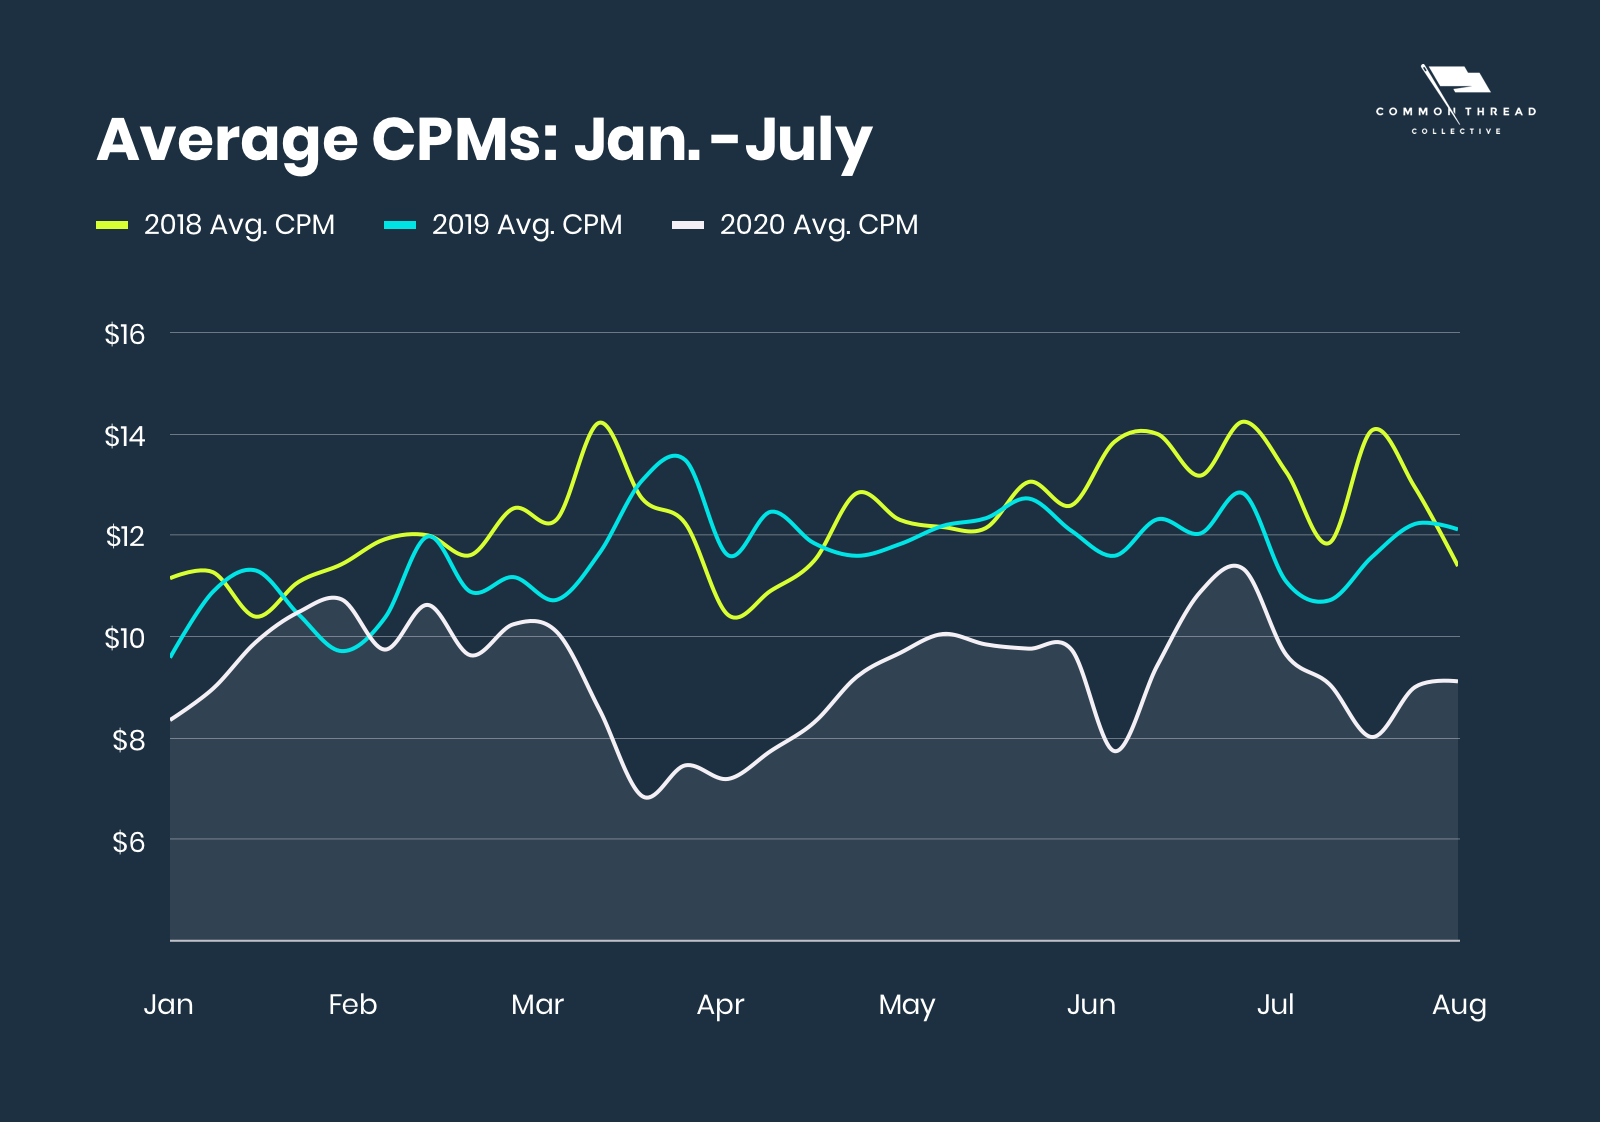 Average CPMs January-July for 2018, 2019, and 2020